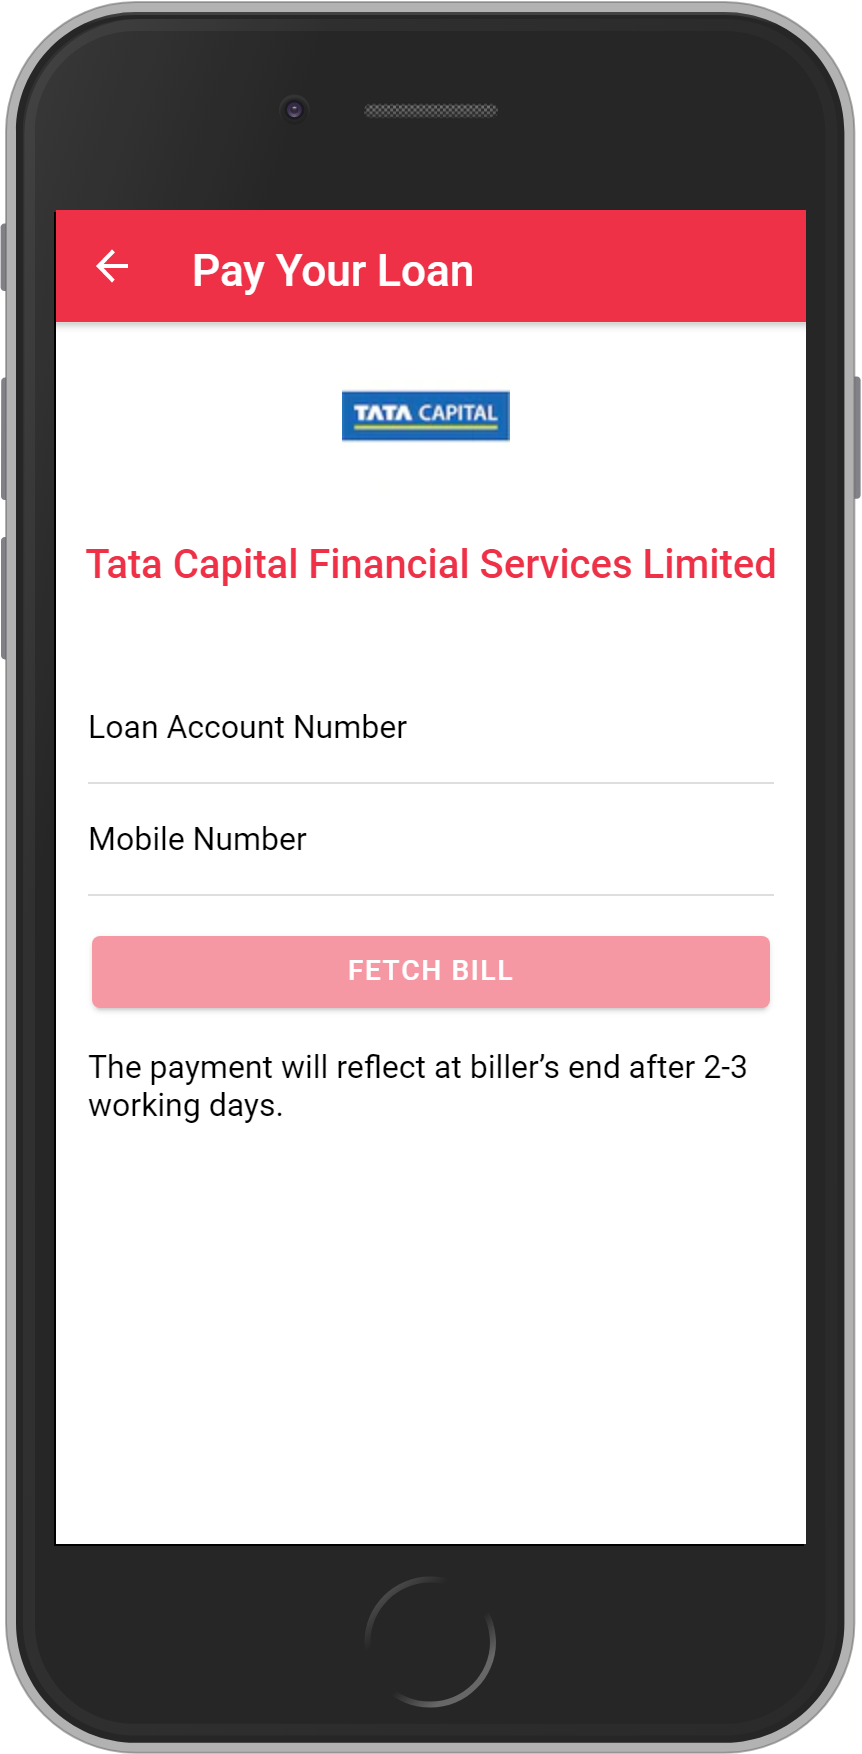 Get UNLIMITED <b>0.1%</b> CASHBACK on Tata Capital Financial Services Limited Loan Payment.